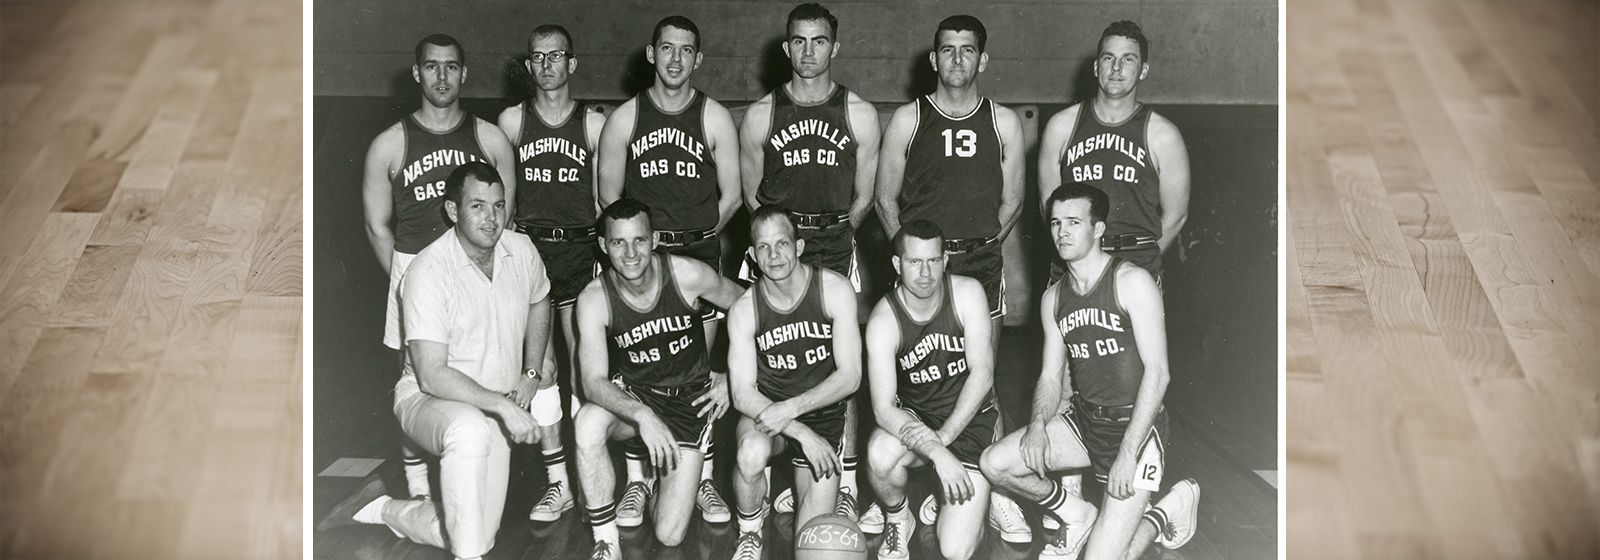 Retro photos: Basketball season is here